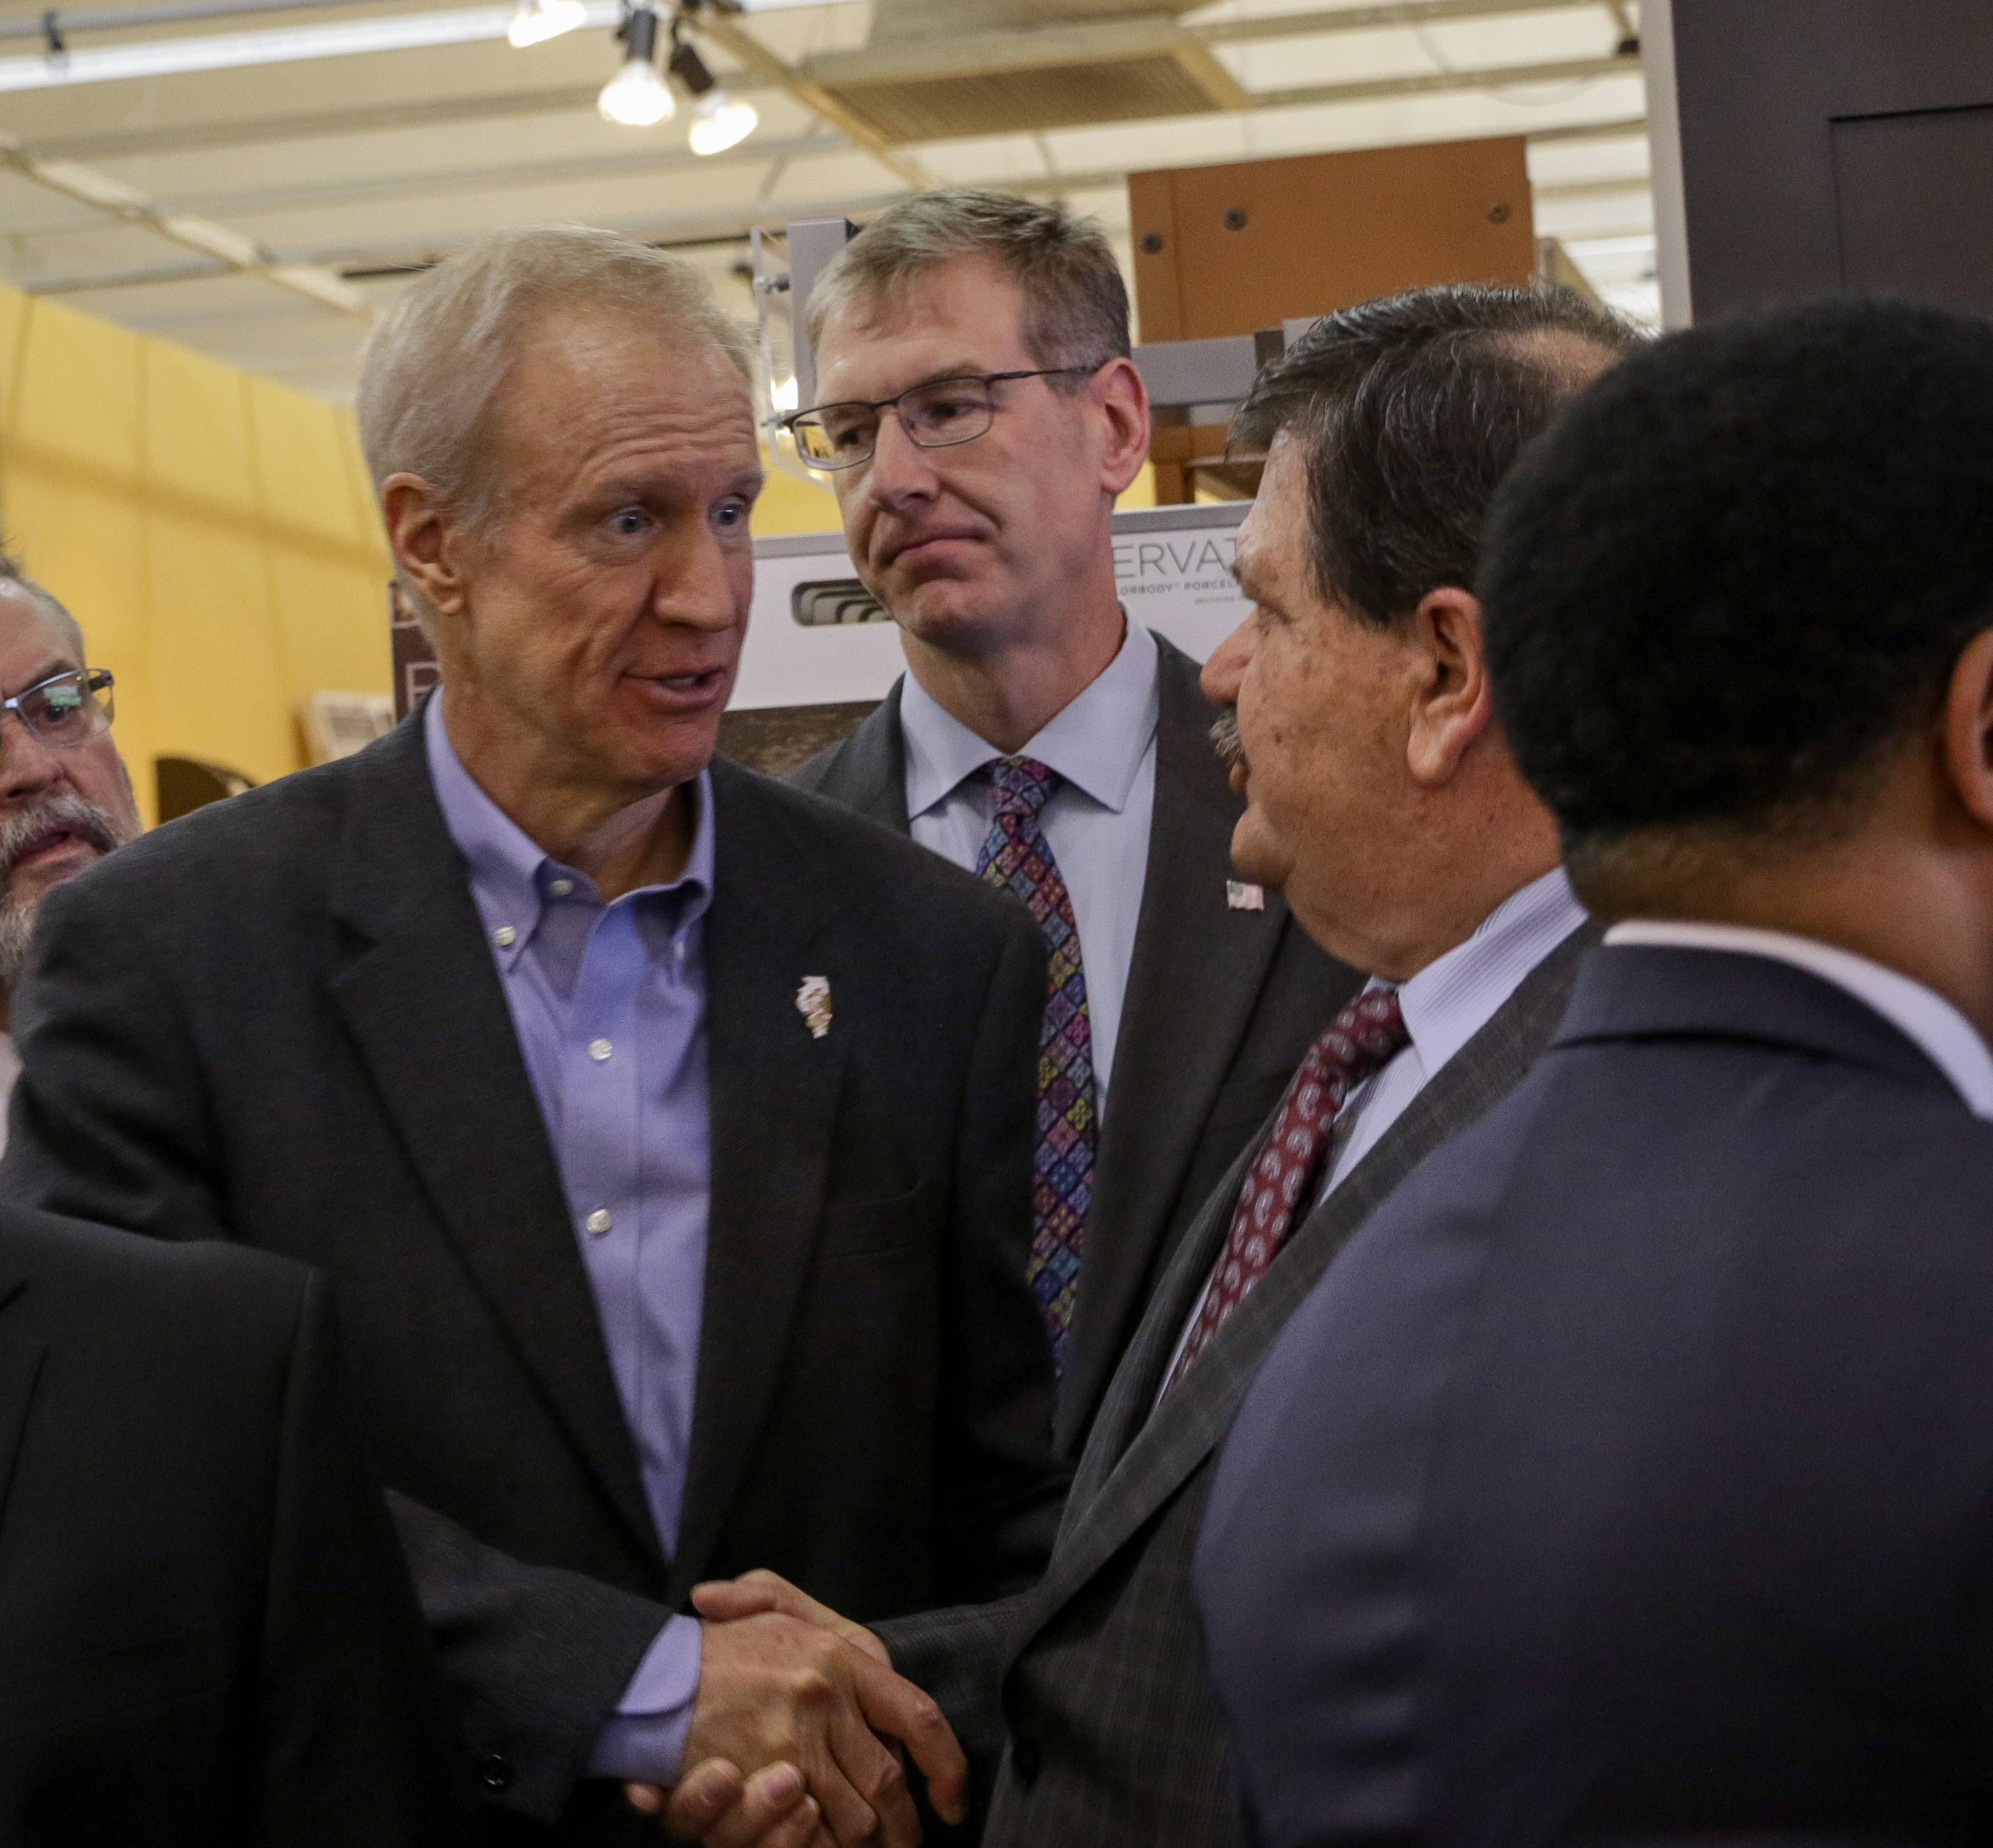 Rauner rallies his base on Ives' home turf in DuPage County